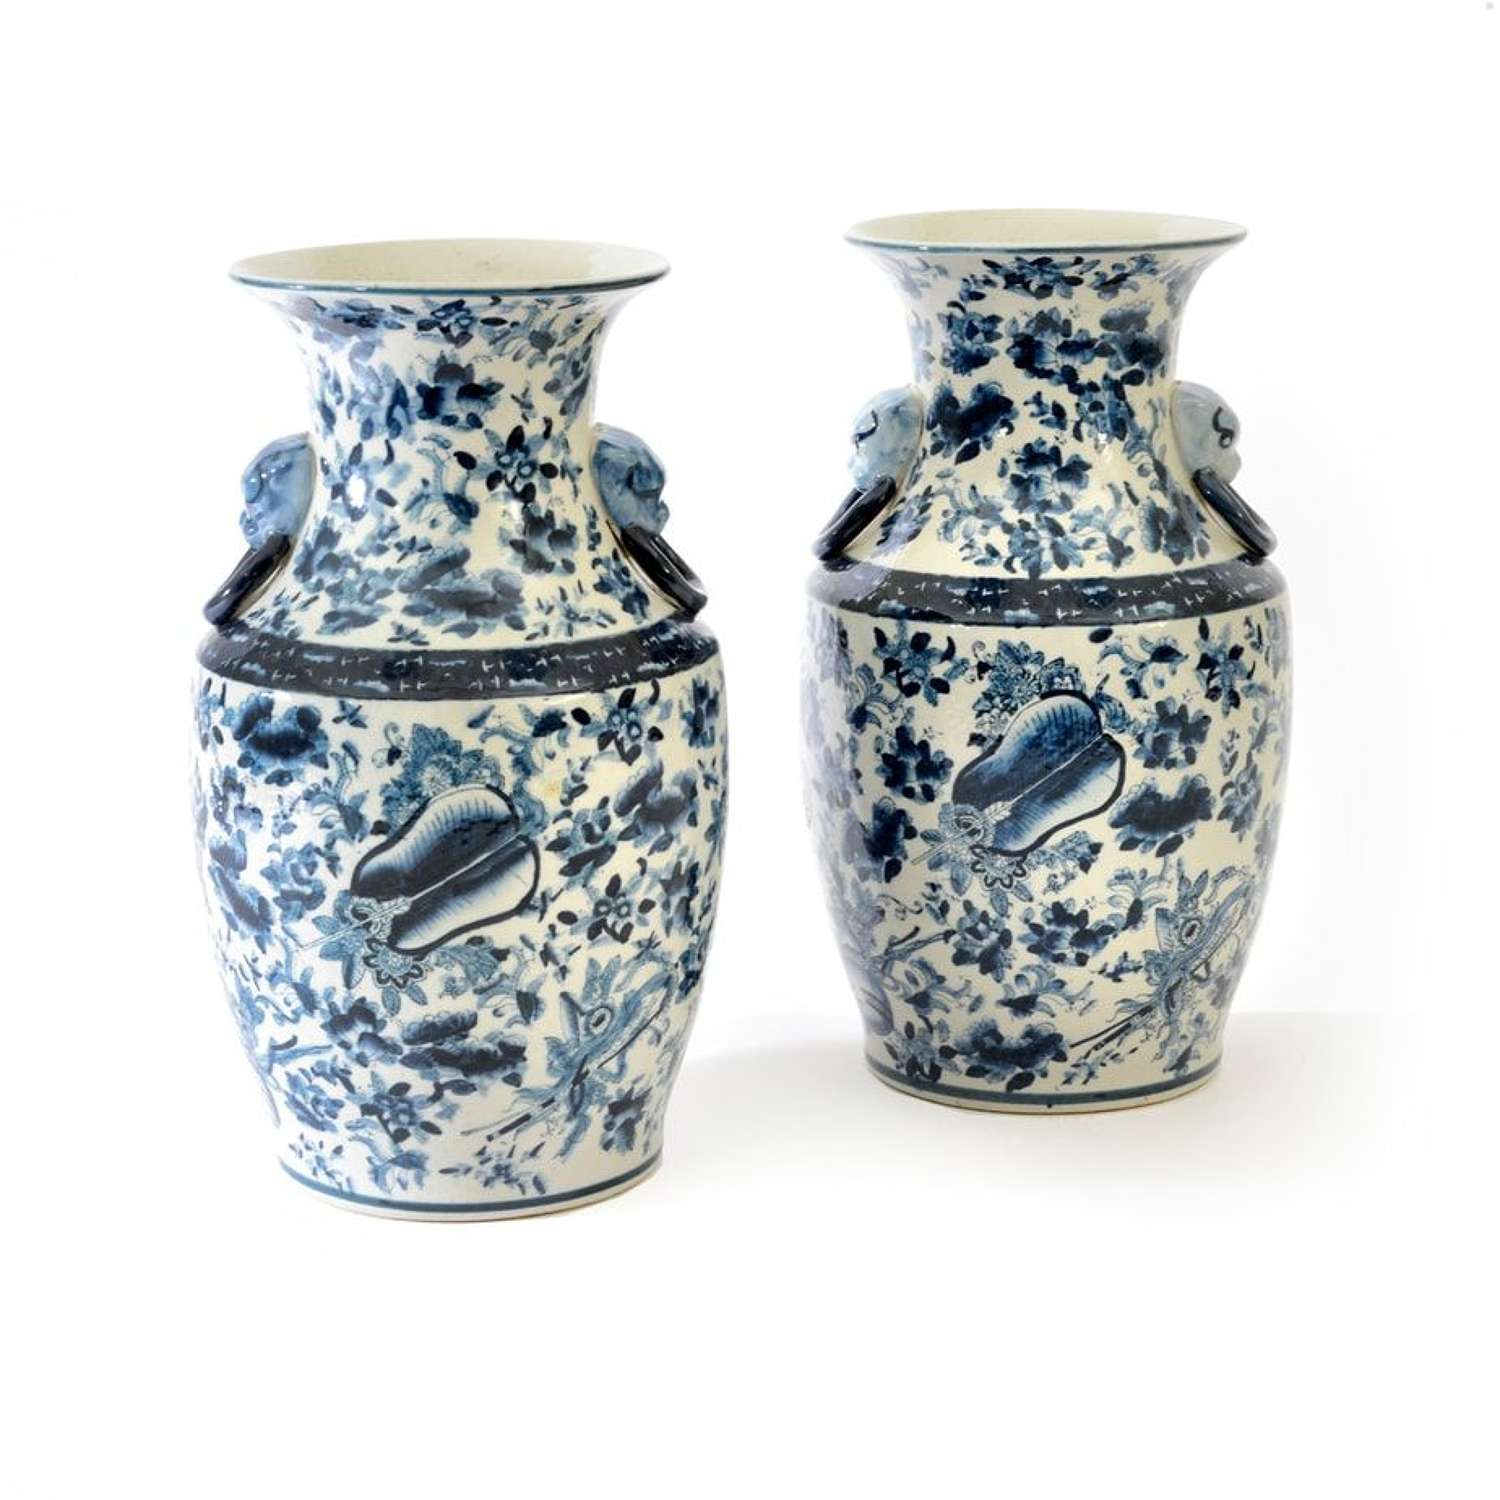 Pair of modern Chinese blue and white baluster vases